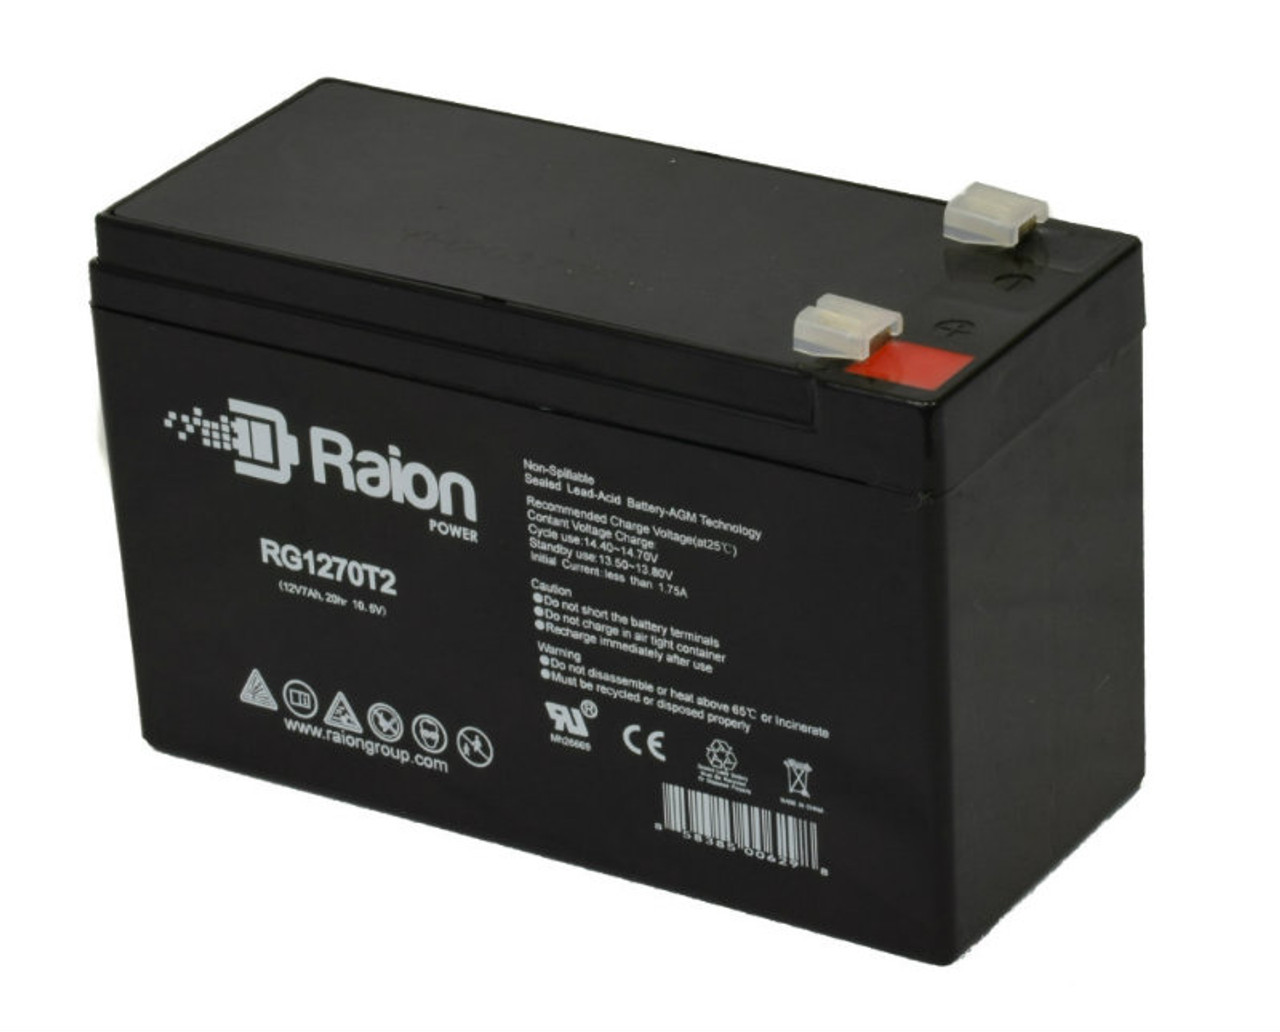 Raion Power RG1270T1 Replacement Battery for Panasonic LC-P127R2P(a)